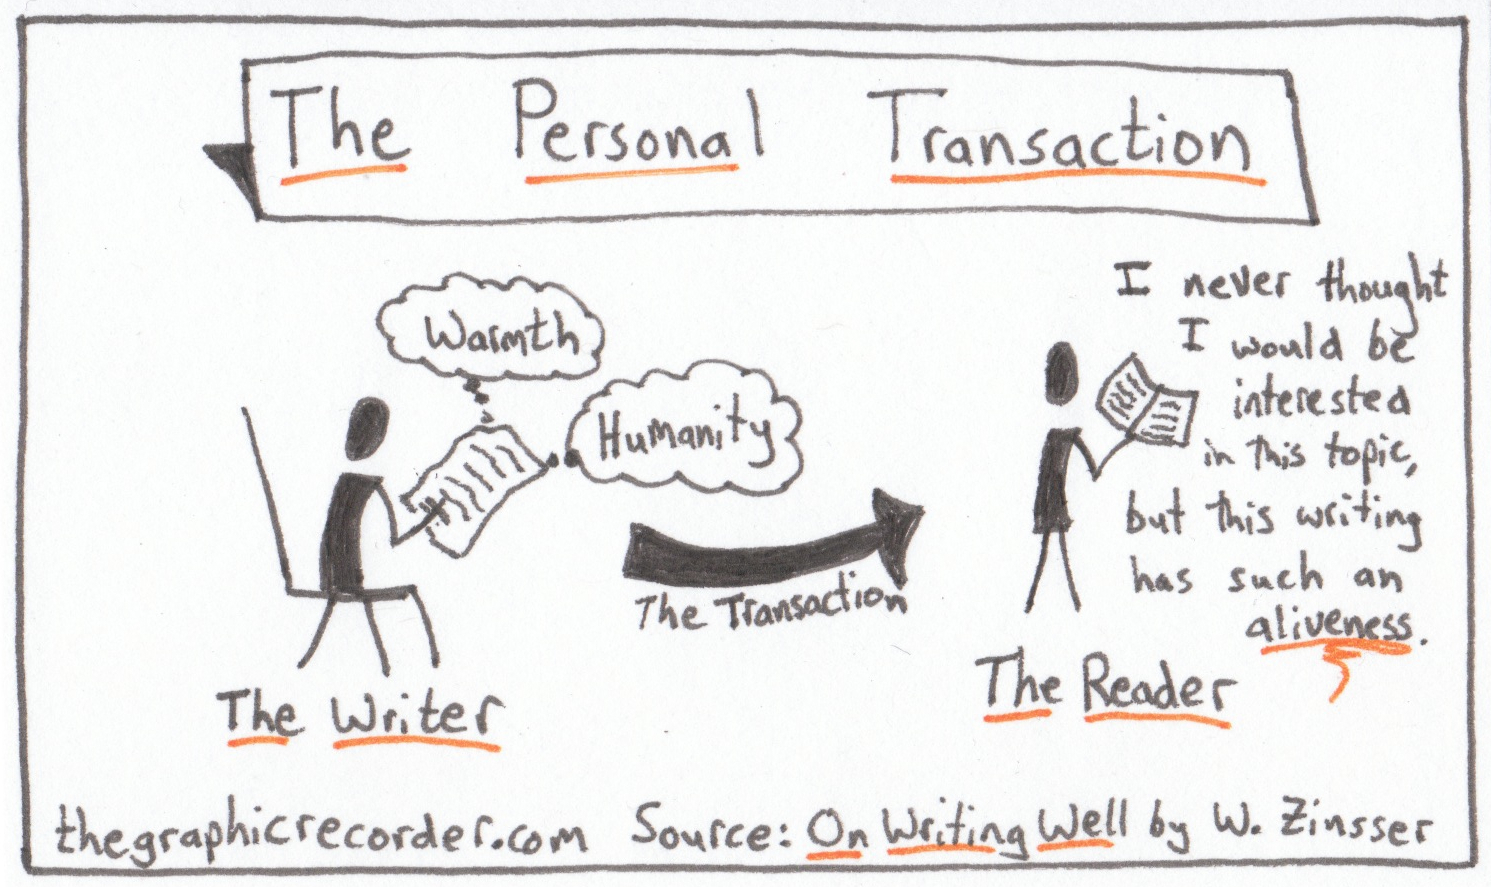 http://www.thegraphicrecorder.com/wp-content/uploads/2012/05/The-Personal-Transaction.jpg